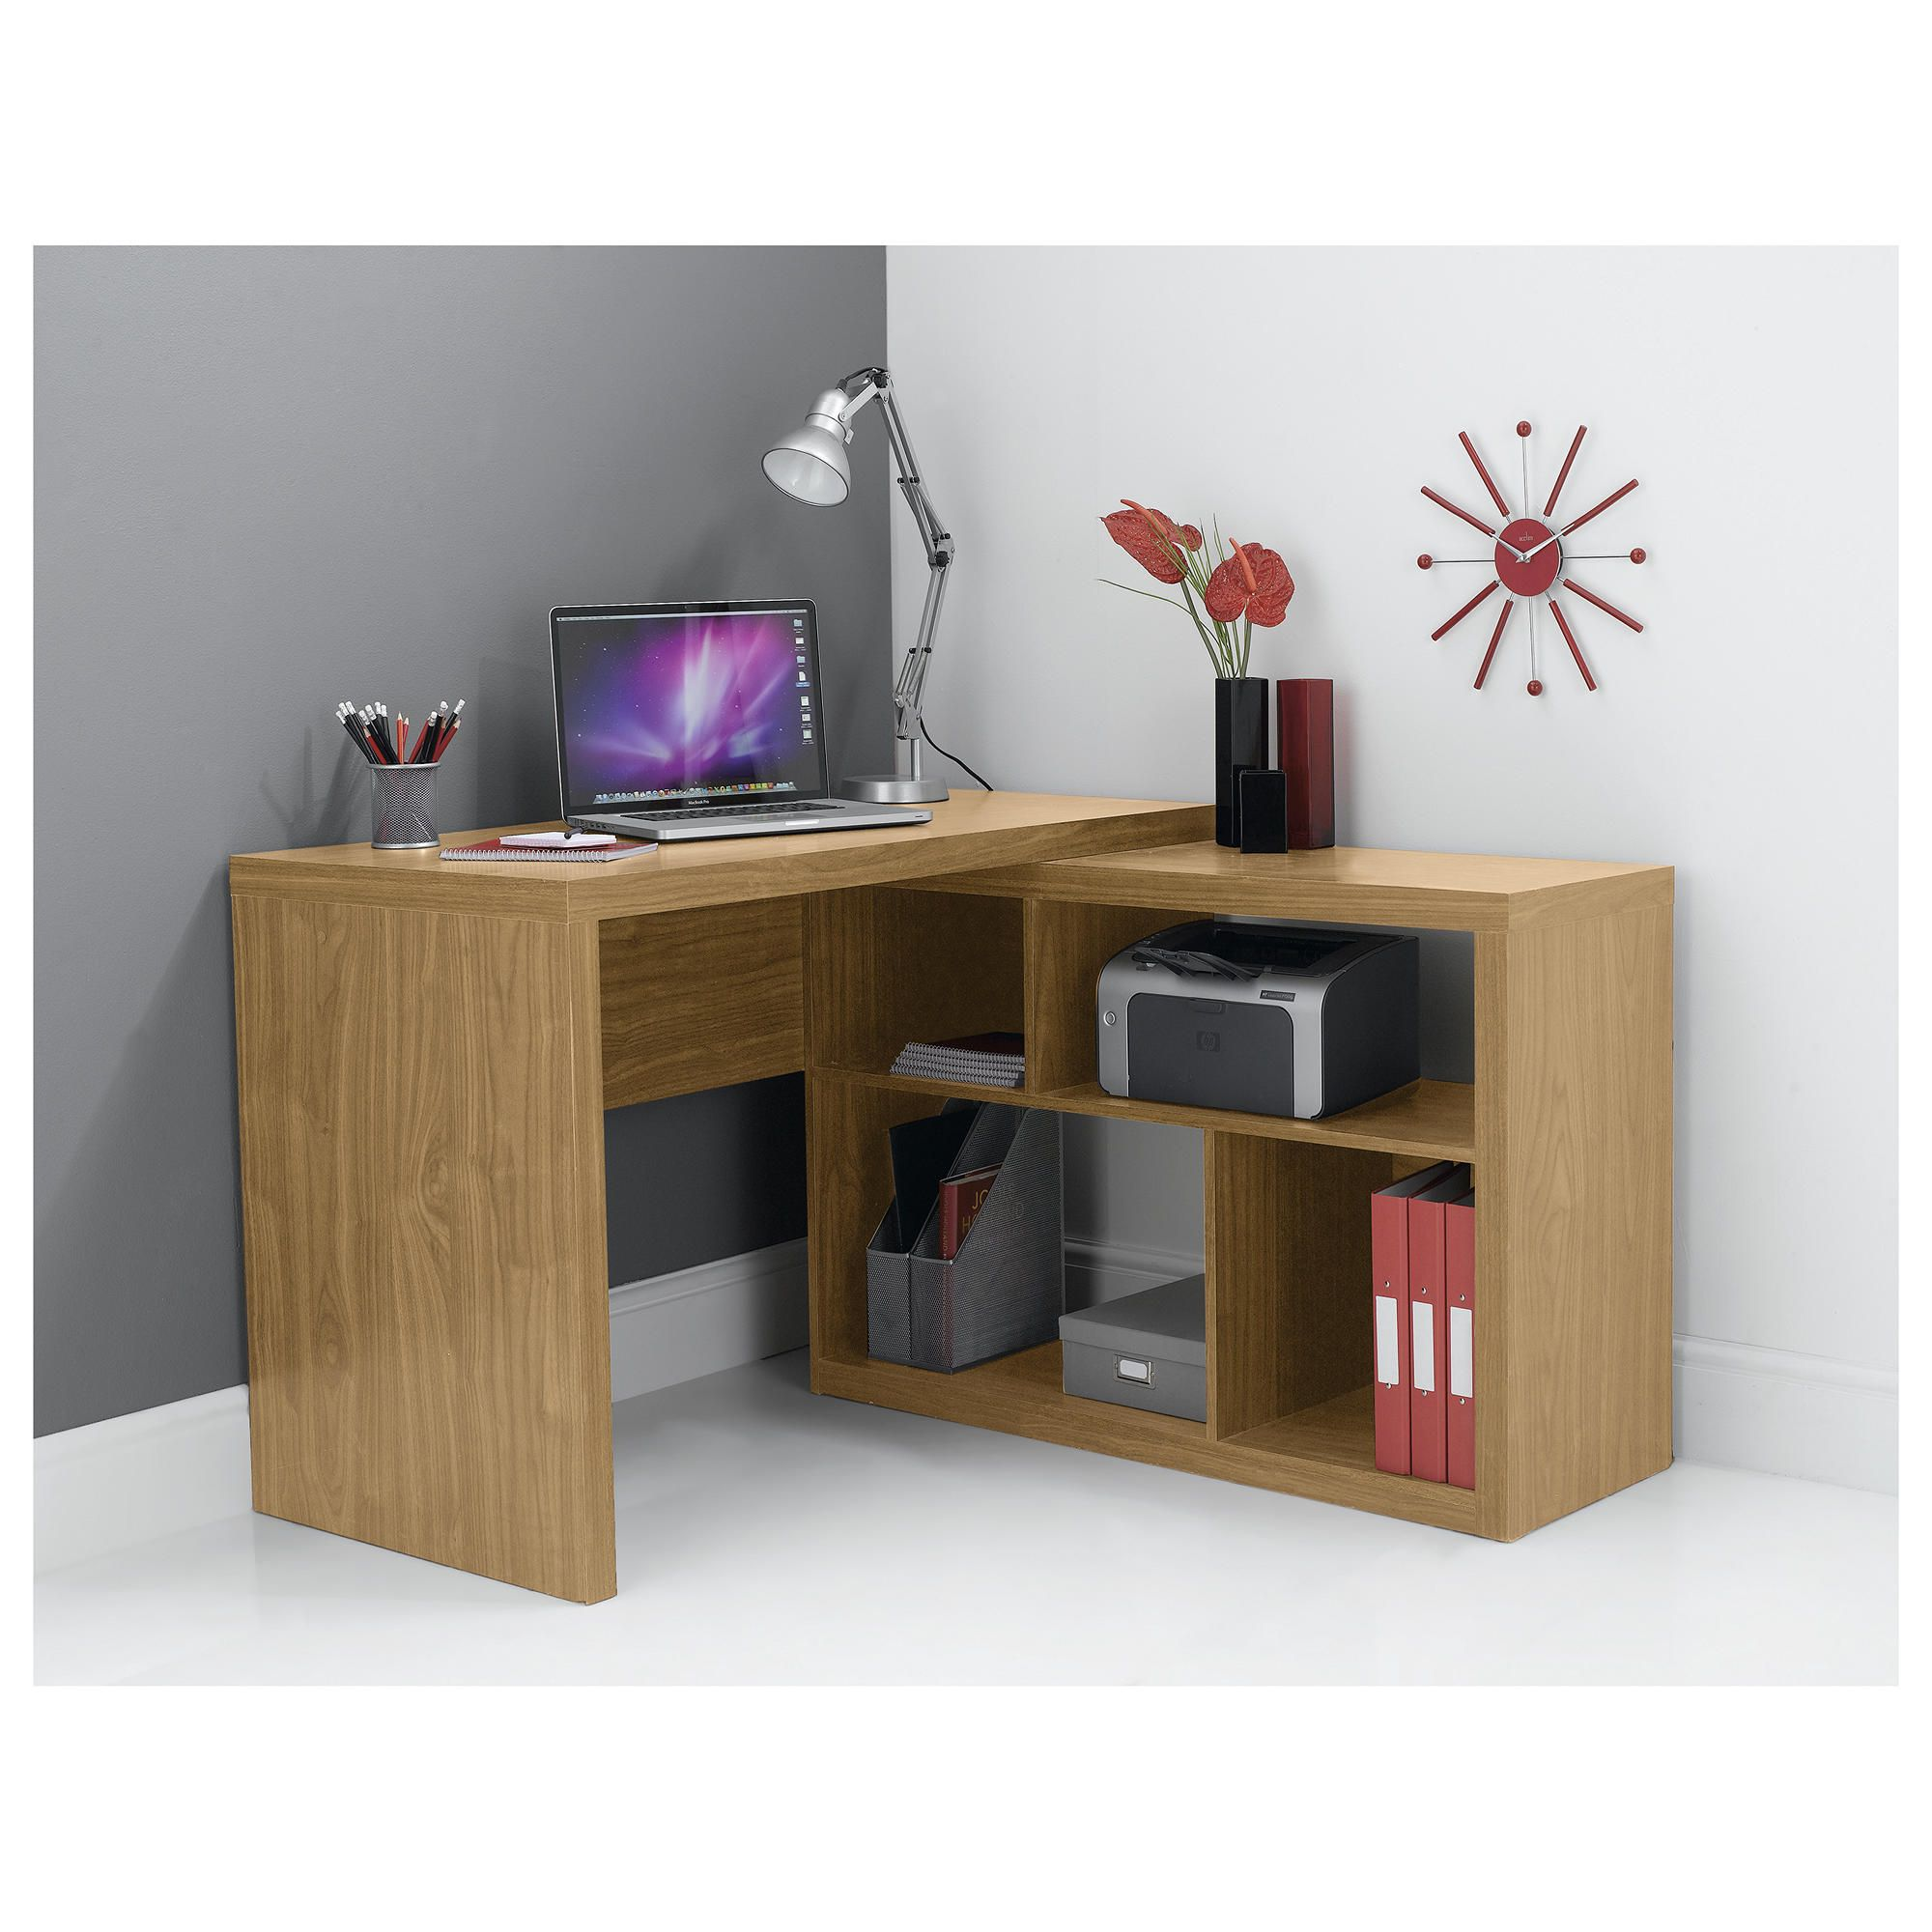 Uk Office Furniture Affordable Office Supplies Office